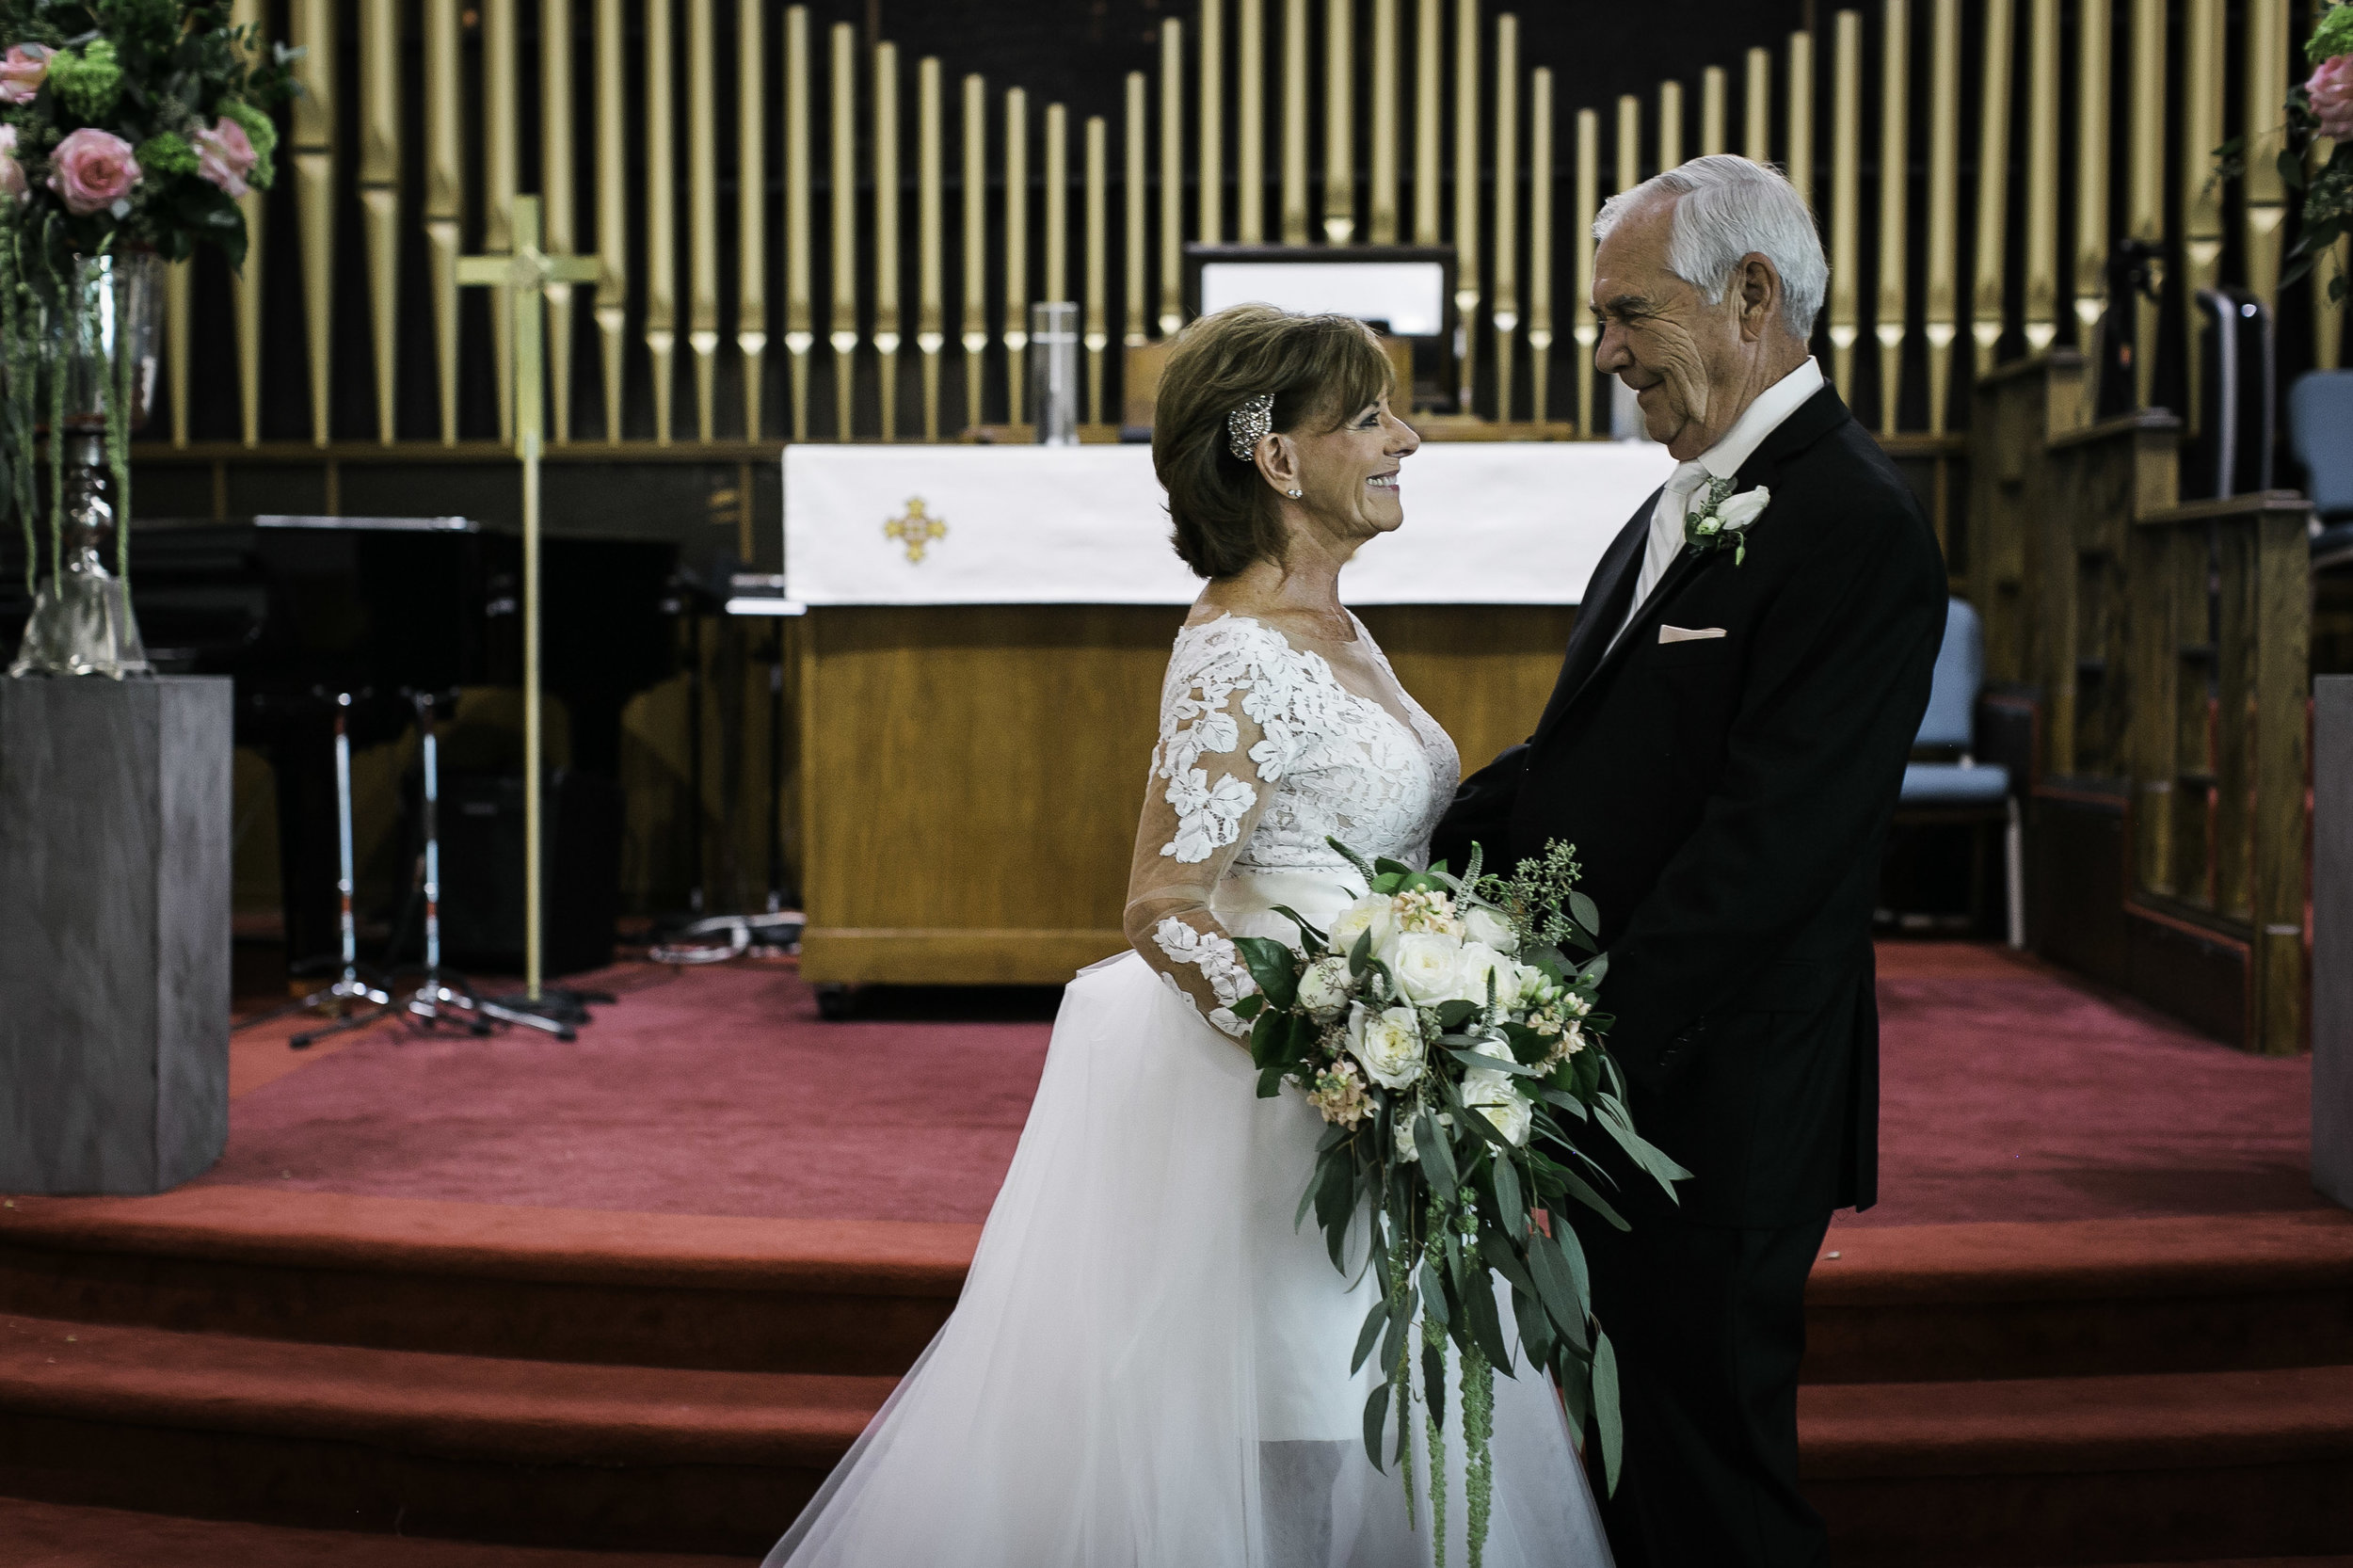 WV Wedding, Marriage, WV Wedding Photographer, Church Wedding, Older Couple, Mature Couple, Wedding Moments, West Virginia Wedding Photographer, Love, Love is Love, Let Love Grow